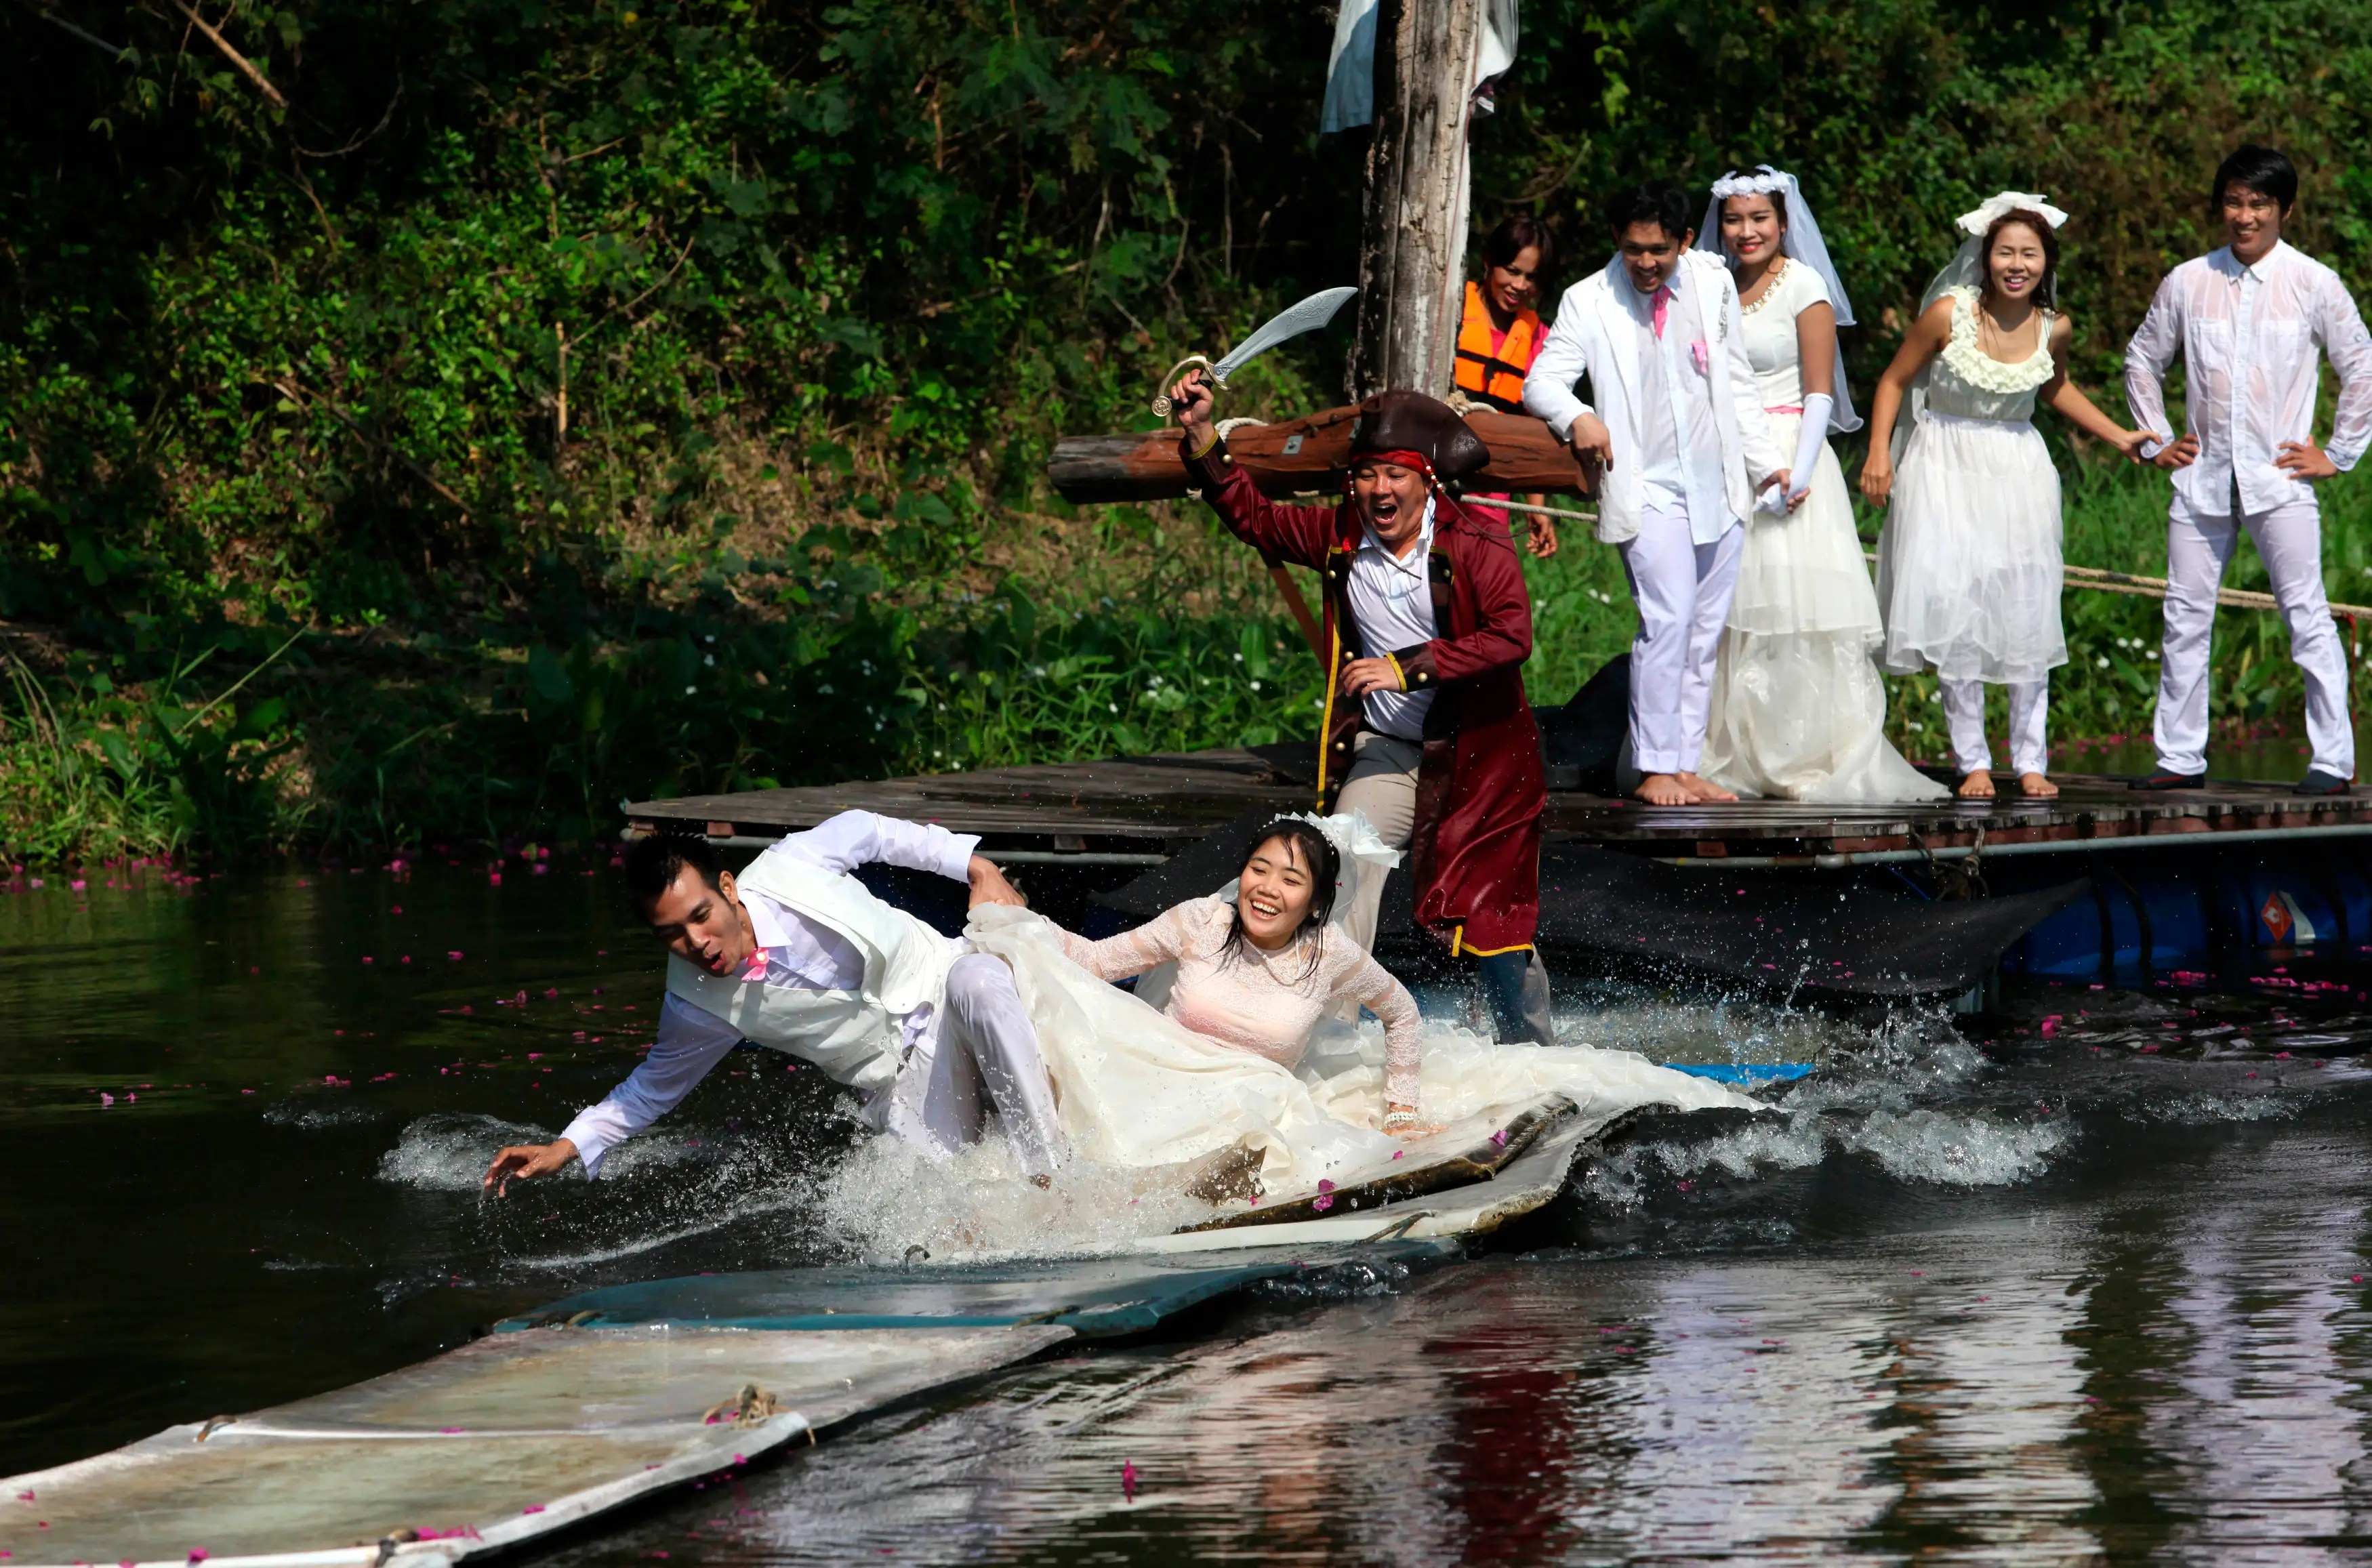 Sorawich Changtor and his bride Rungnapa Panla run to escape a man dressed as a pirate in Prachin Buri province, east of Bangkok, Thailand.